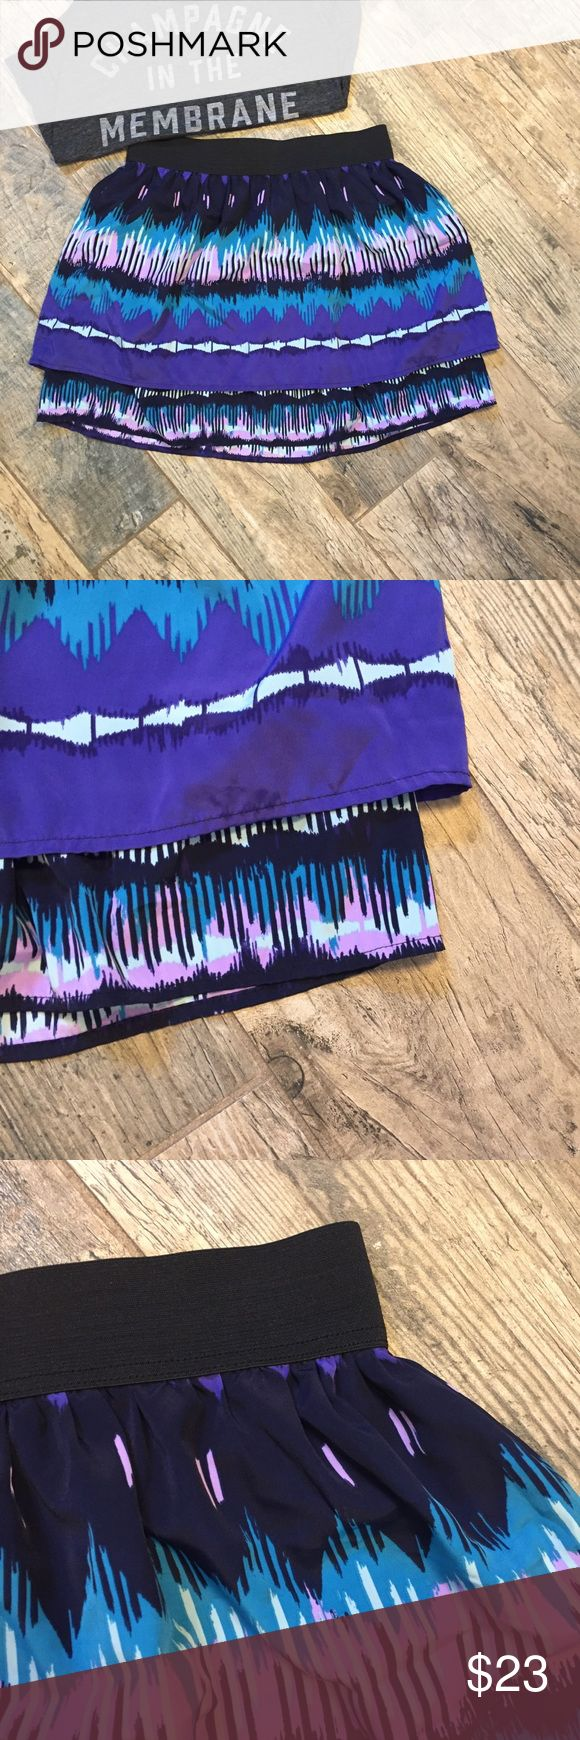 LC Lauren Conrad Tiered Multicolor Miniskirt Sz 10 Sz 10 LC Lauren Conrad Tiered Multicolor Miniskirt. Purple, black, and blue tones in an abstract print. Exposed zipper closure in back, elastic waist. Easy breezy! Approx measurements laid flat = 14 straight across at waist, 16.5 drop from top to bottom. Get ready for spring! LC Lauren Conrad Tiered Multicolor Miniskirt is colorful fun! LC Lauren Conrad Skirts Mini